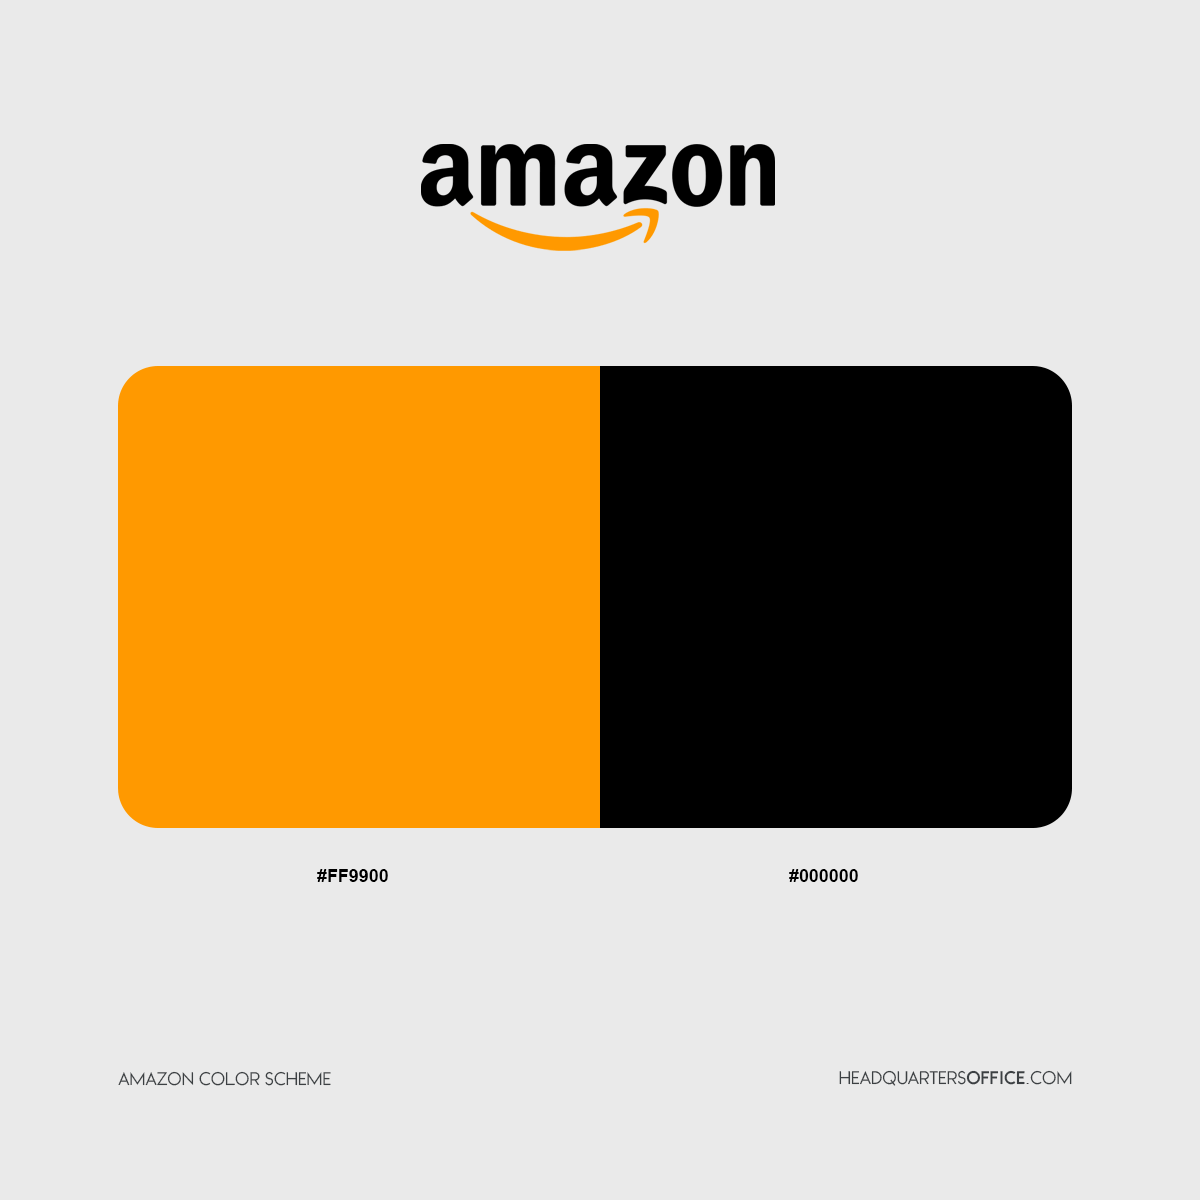 amazon logo colors